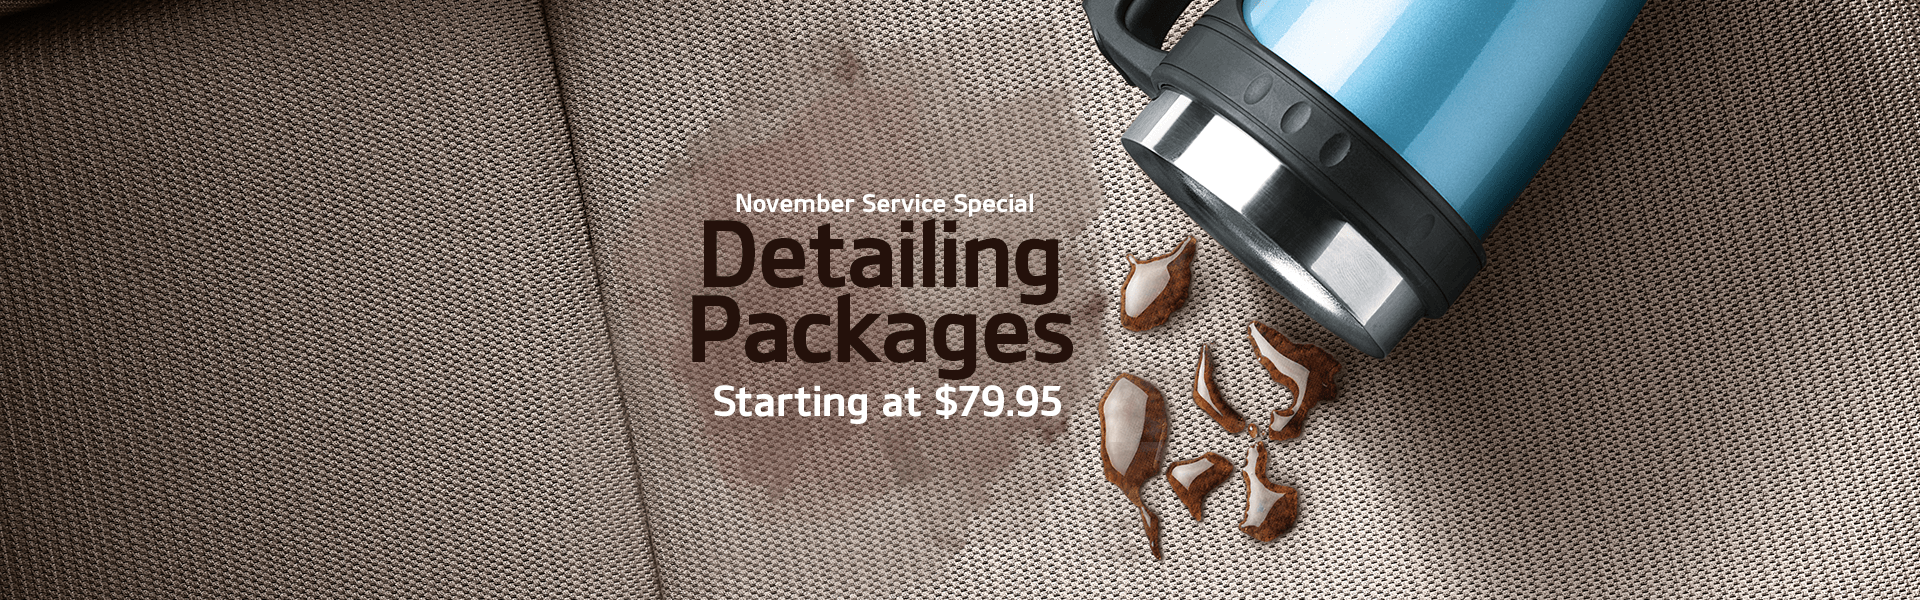 November service special: Detailing Packages starting at $79.95